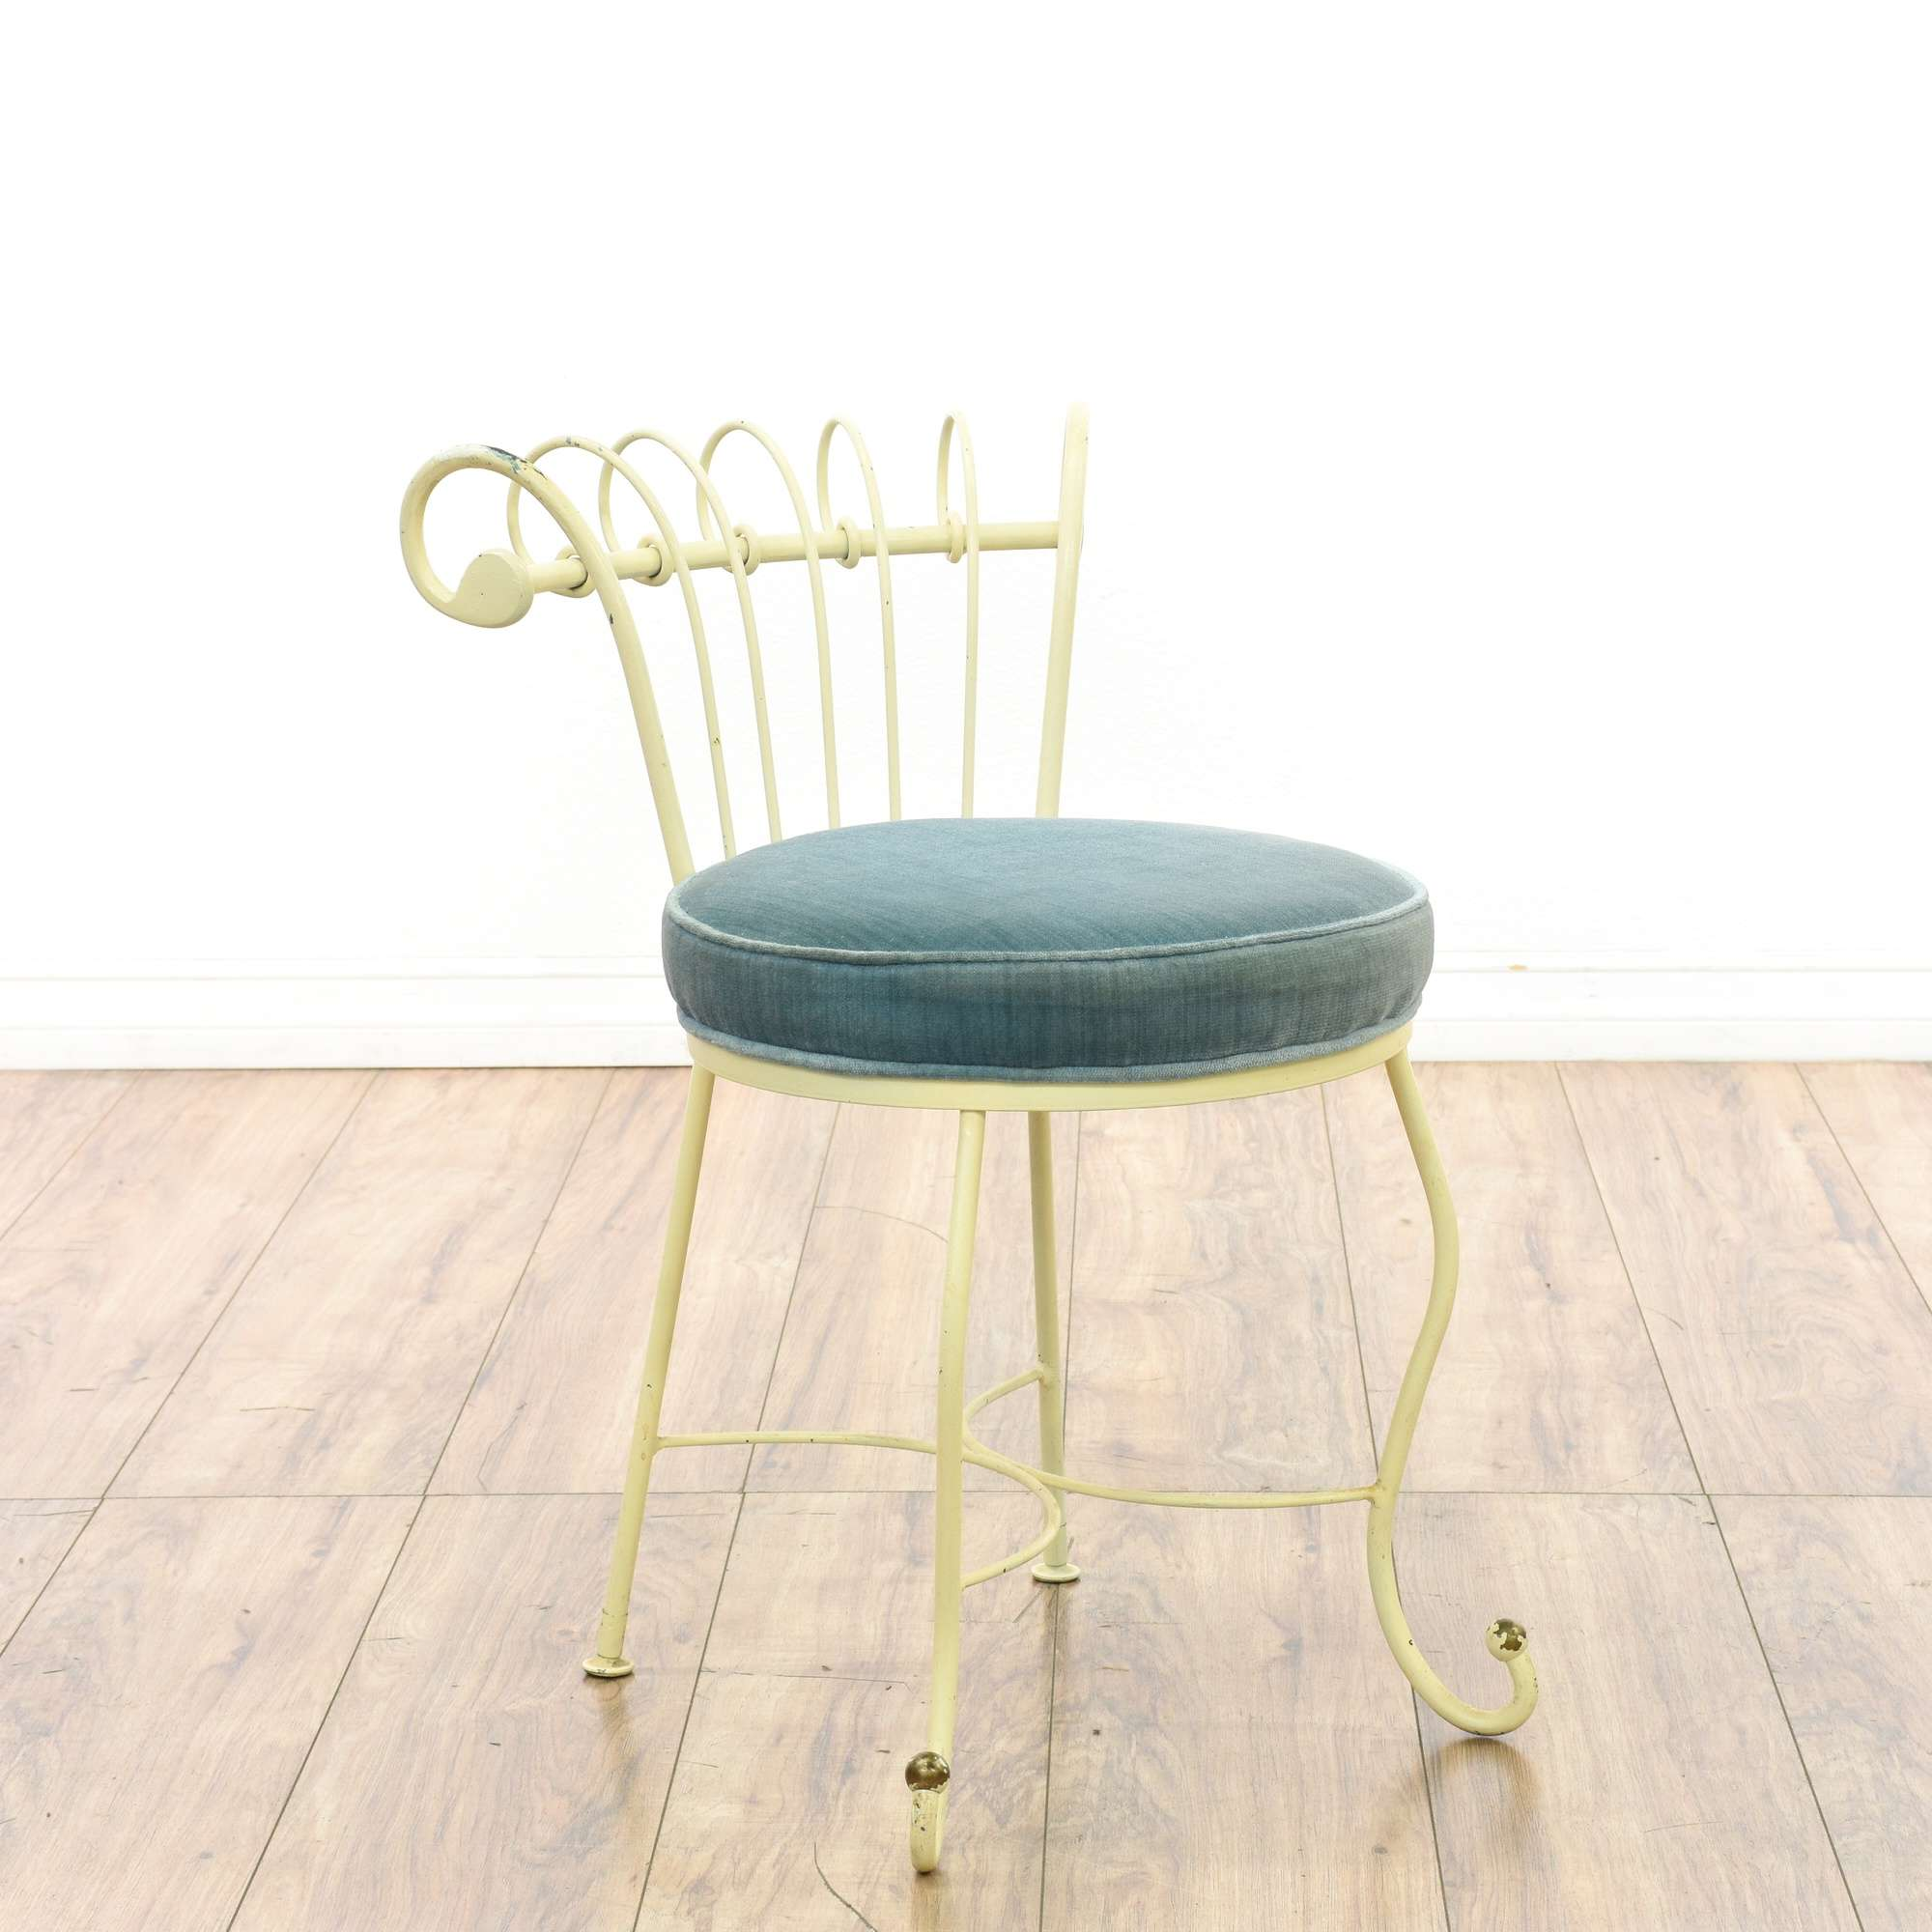 Superb White Wrought Iron Blue Velvet Vanity Stool Loveseat Caraccident5 Cool Chair Designs And Ideas Caraccident5Info